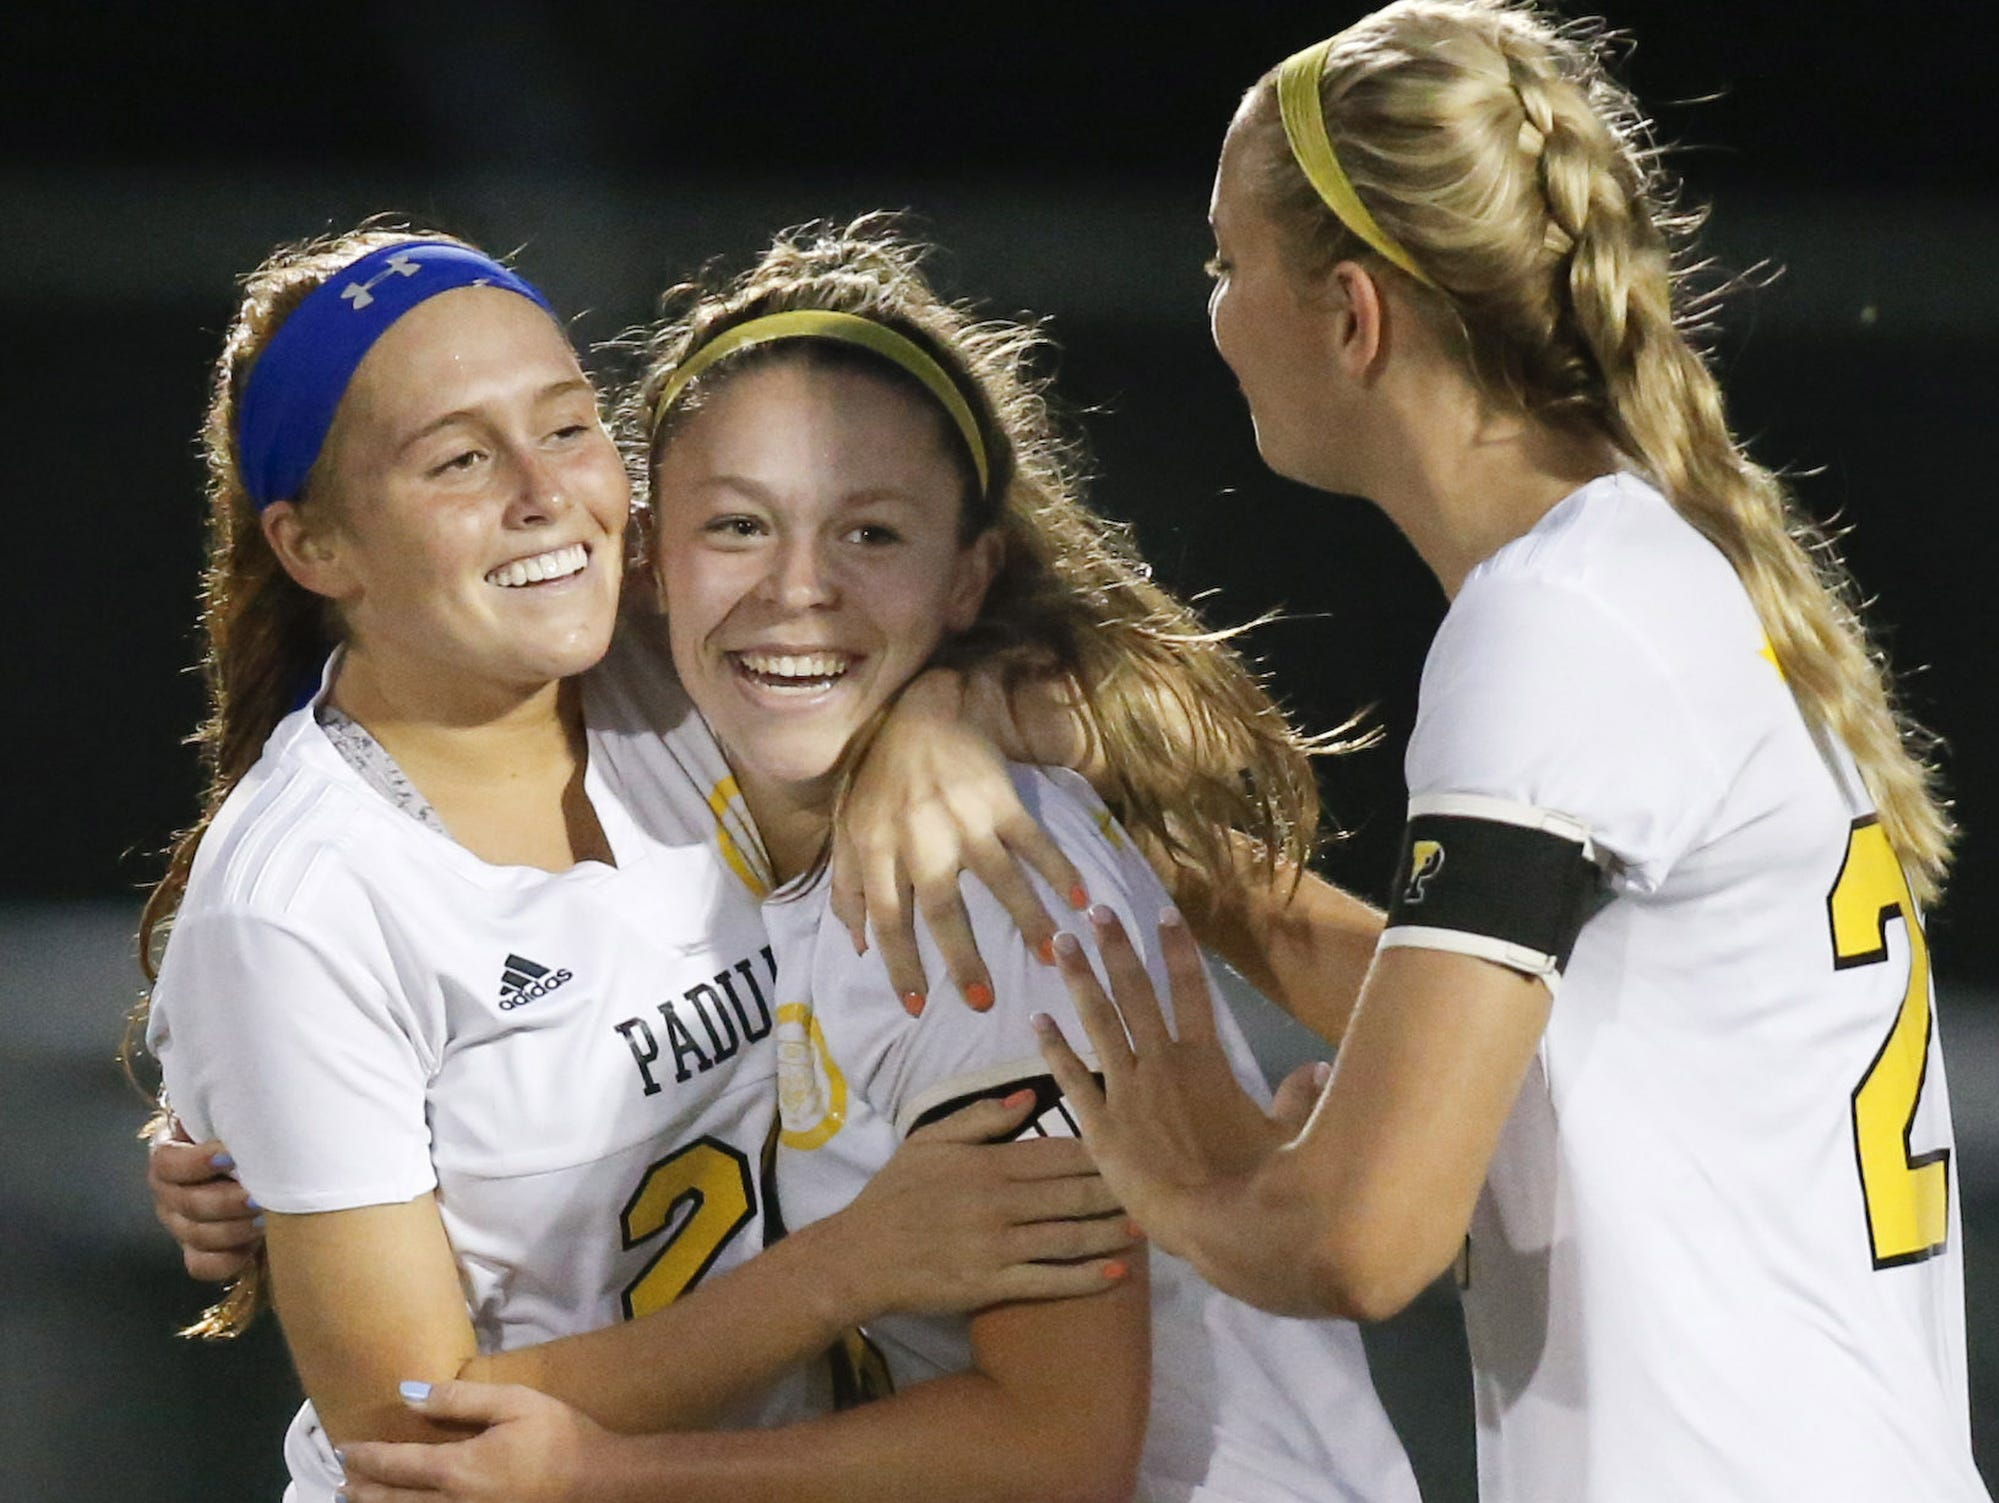 Padua's Sarah Brush (center) celebrates her opening goal with Mackenzie Scully (left) and Molly Drach in the first half against Caesar Rodney in the DIAA Division I state title game at Smyrna High School on Friday.